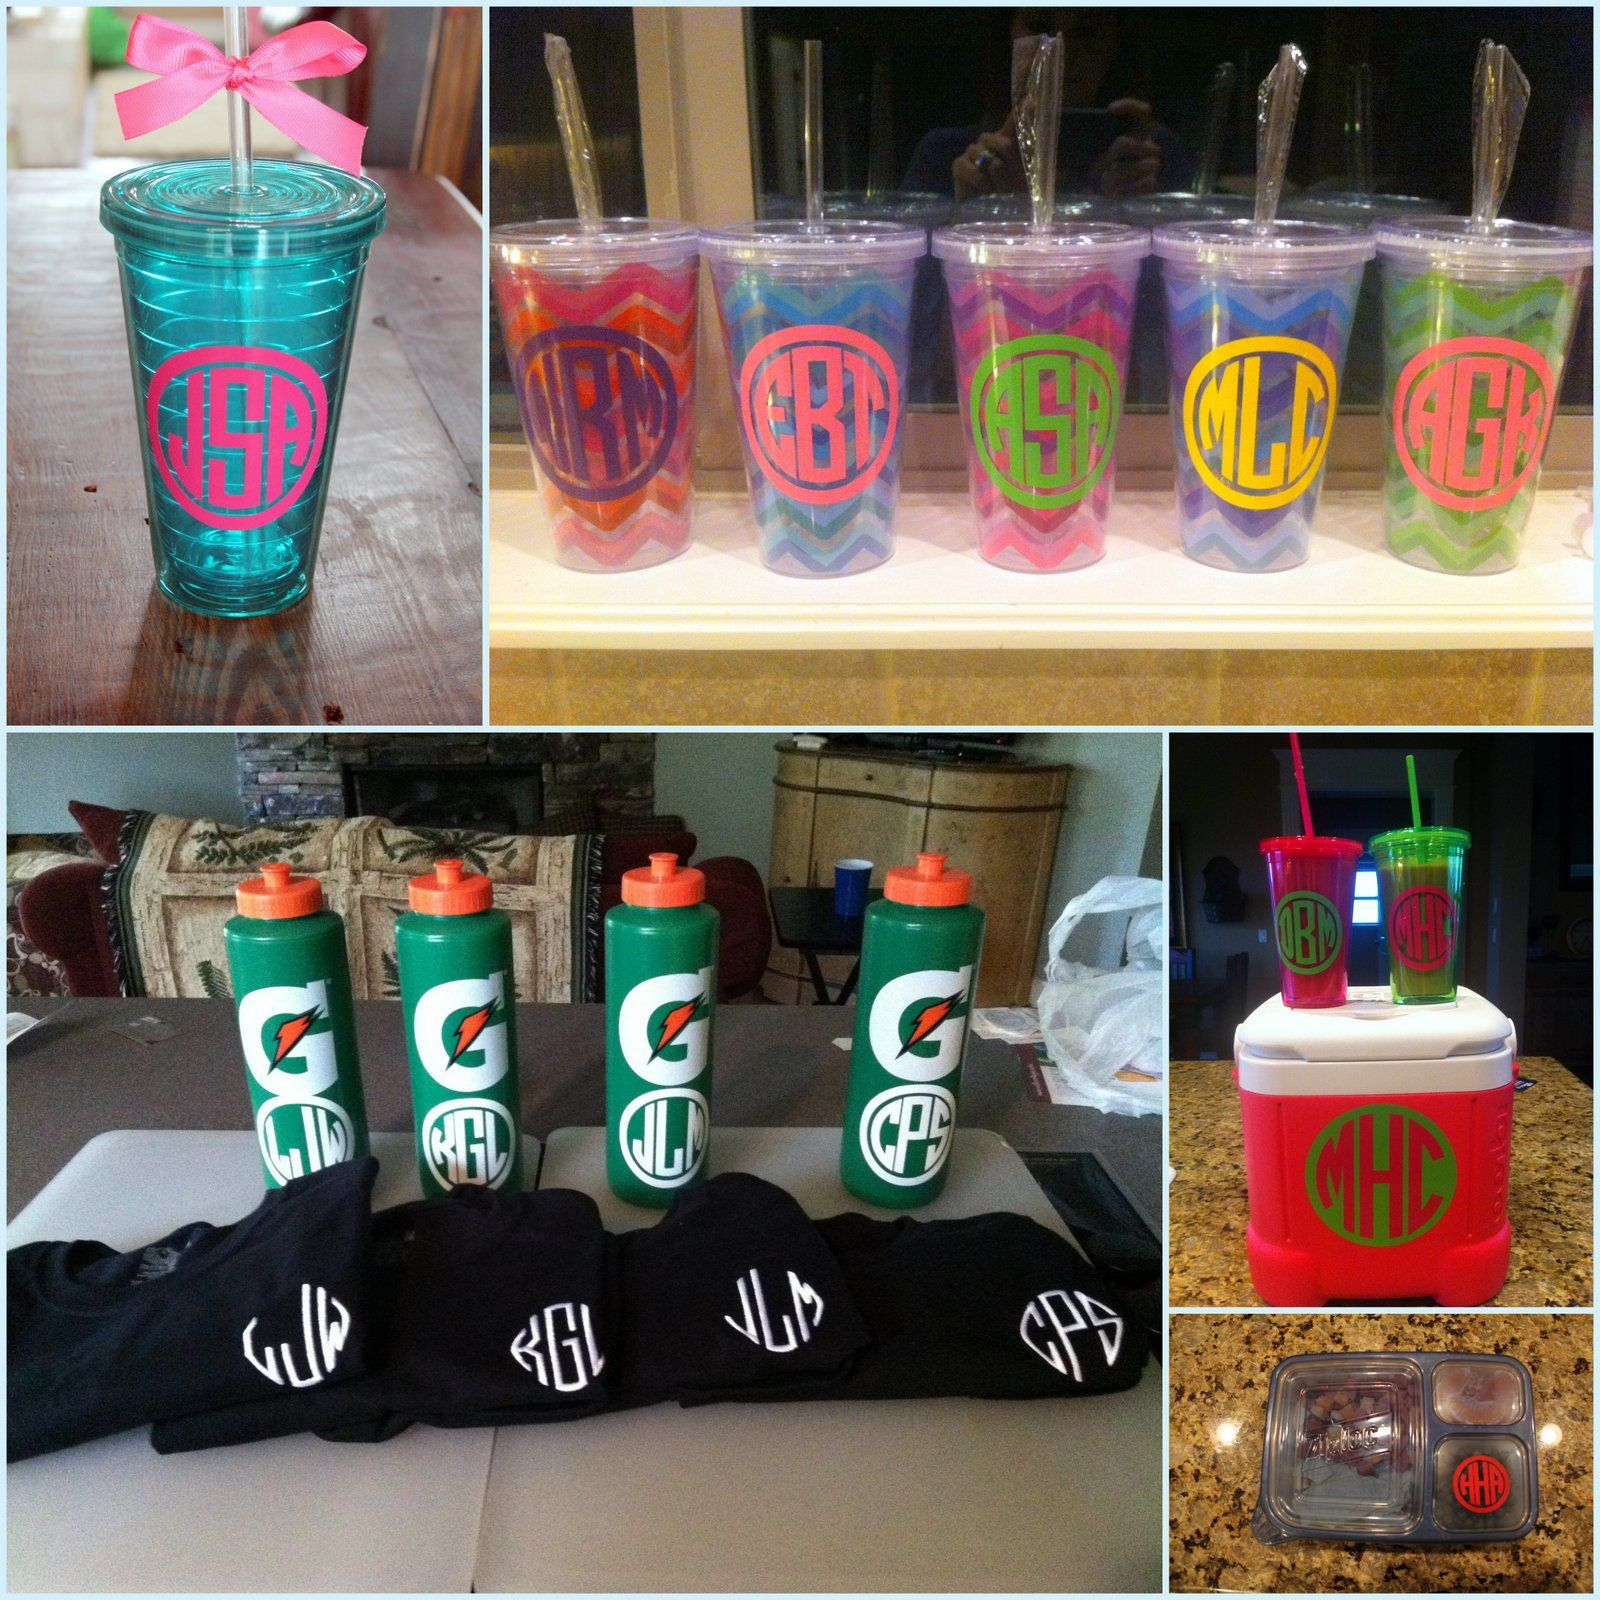 Creative Cricut And Vinyl Projects On Pinterest: The Houser House: DIY Monogrammed Tervis. Crafts. Crafty